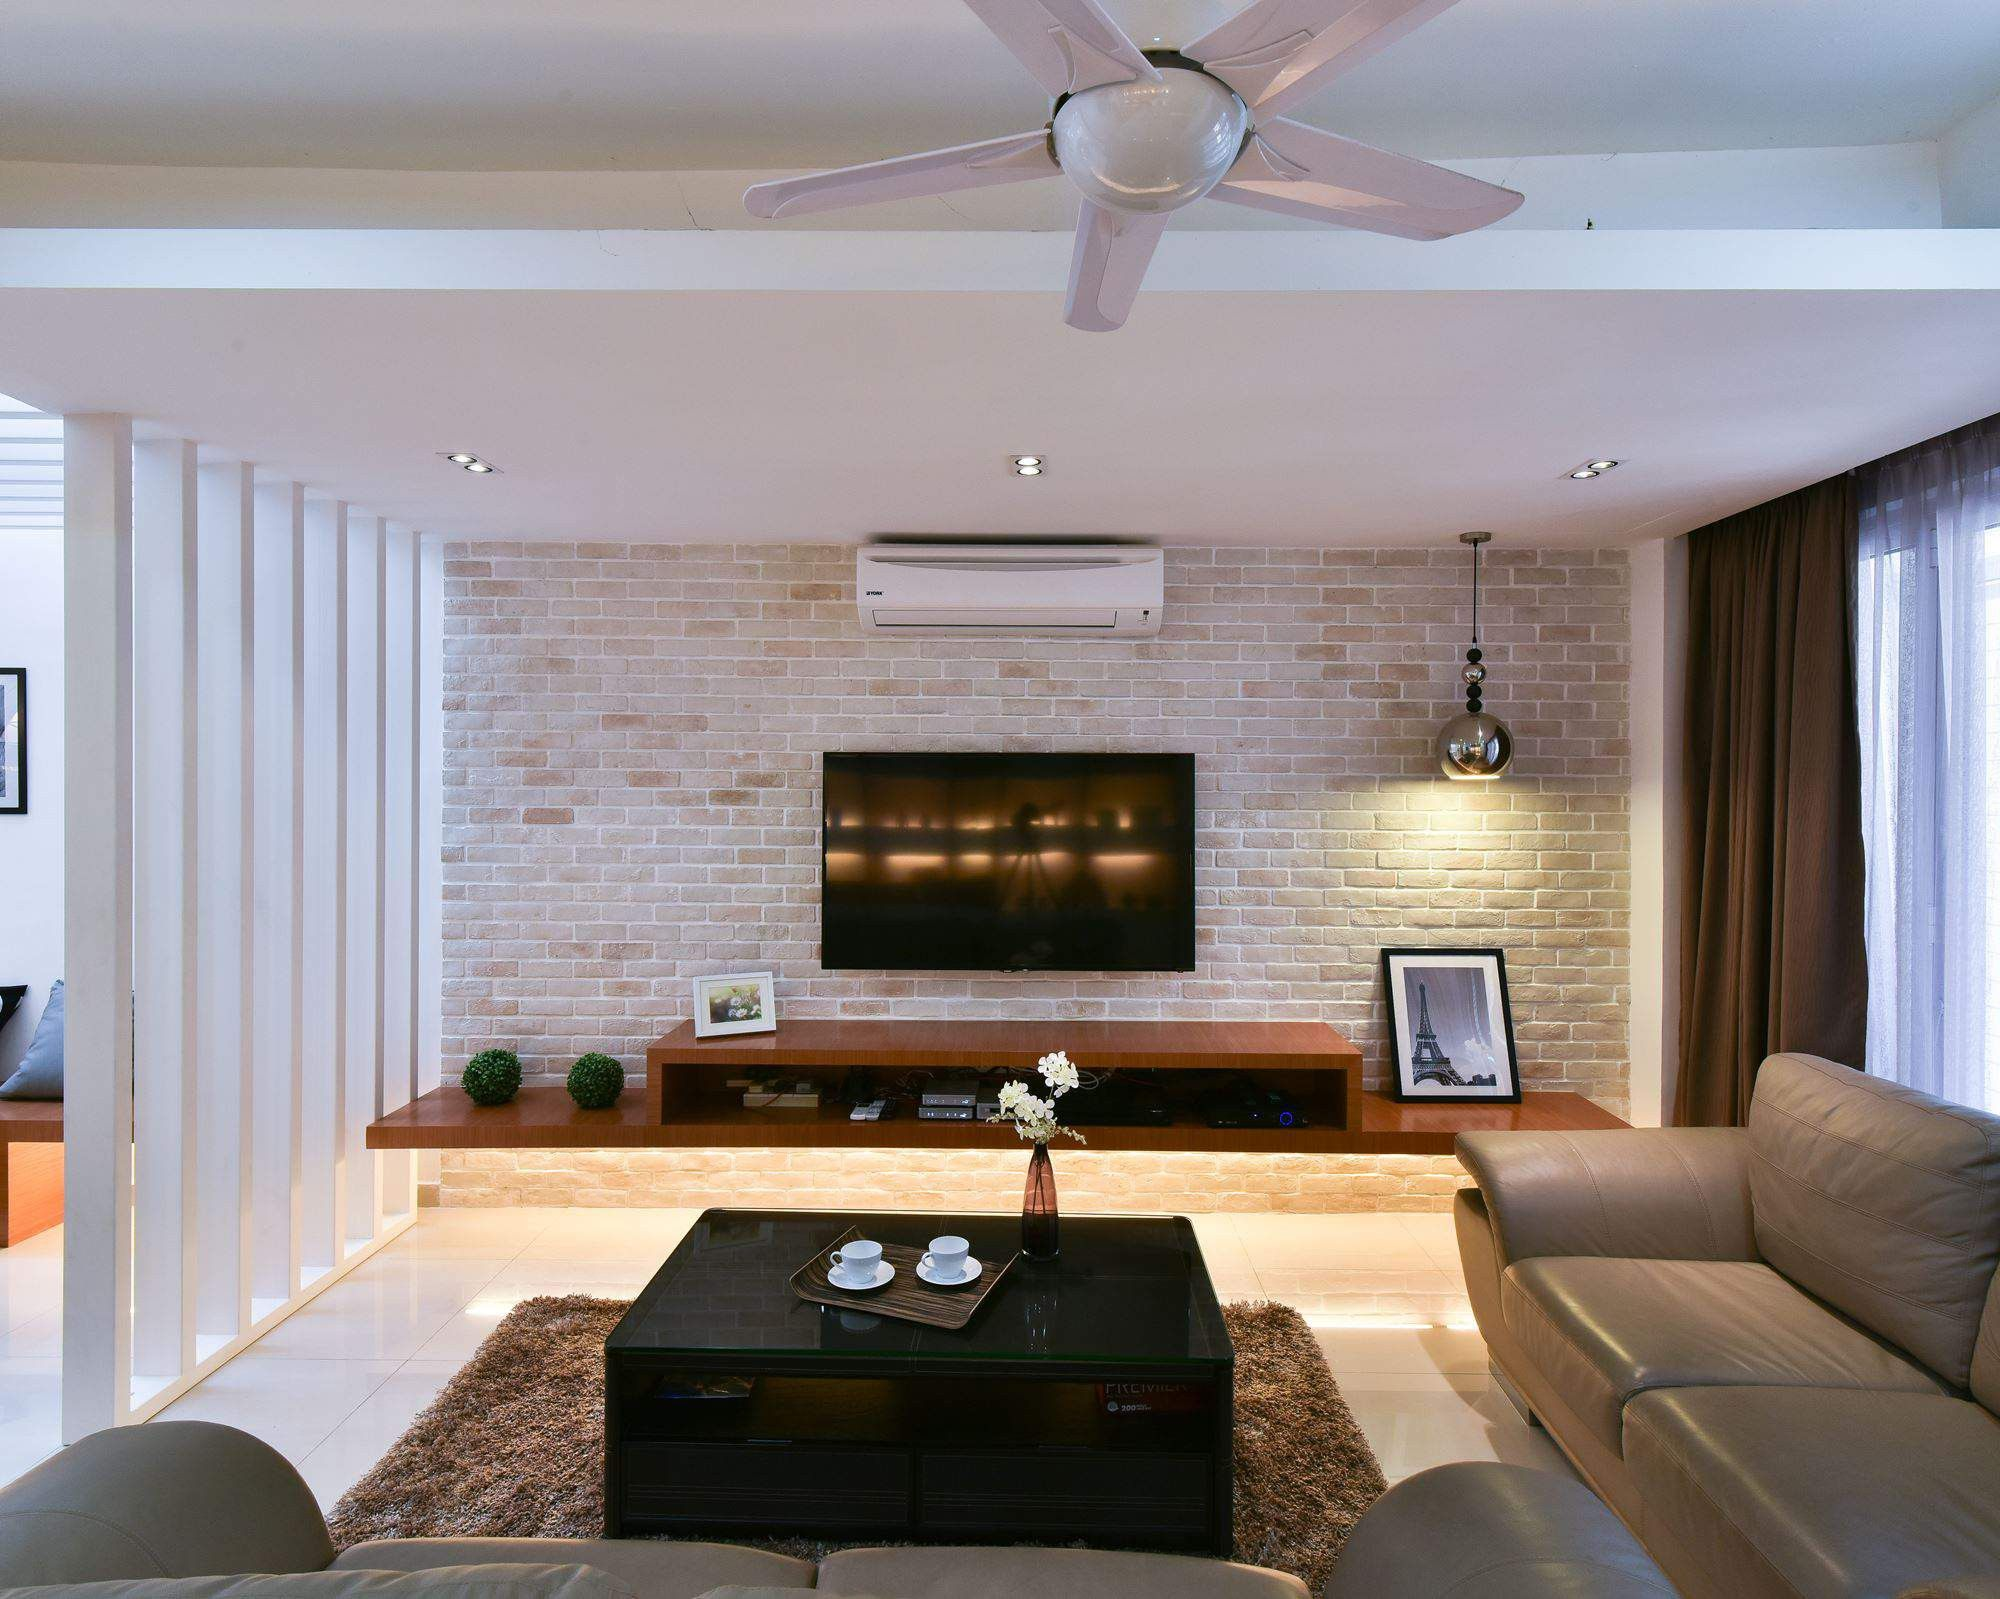 ambiance interior design. Exellent Ambiance Wangsa Melawati Home Redesigned With A Spacious Ambiance In Mind By Surface  R Inside Ambiance Interior Design